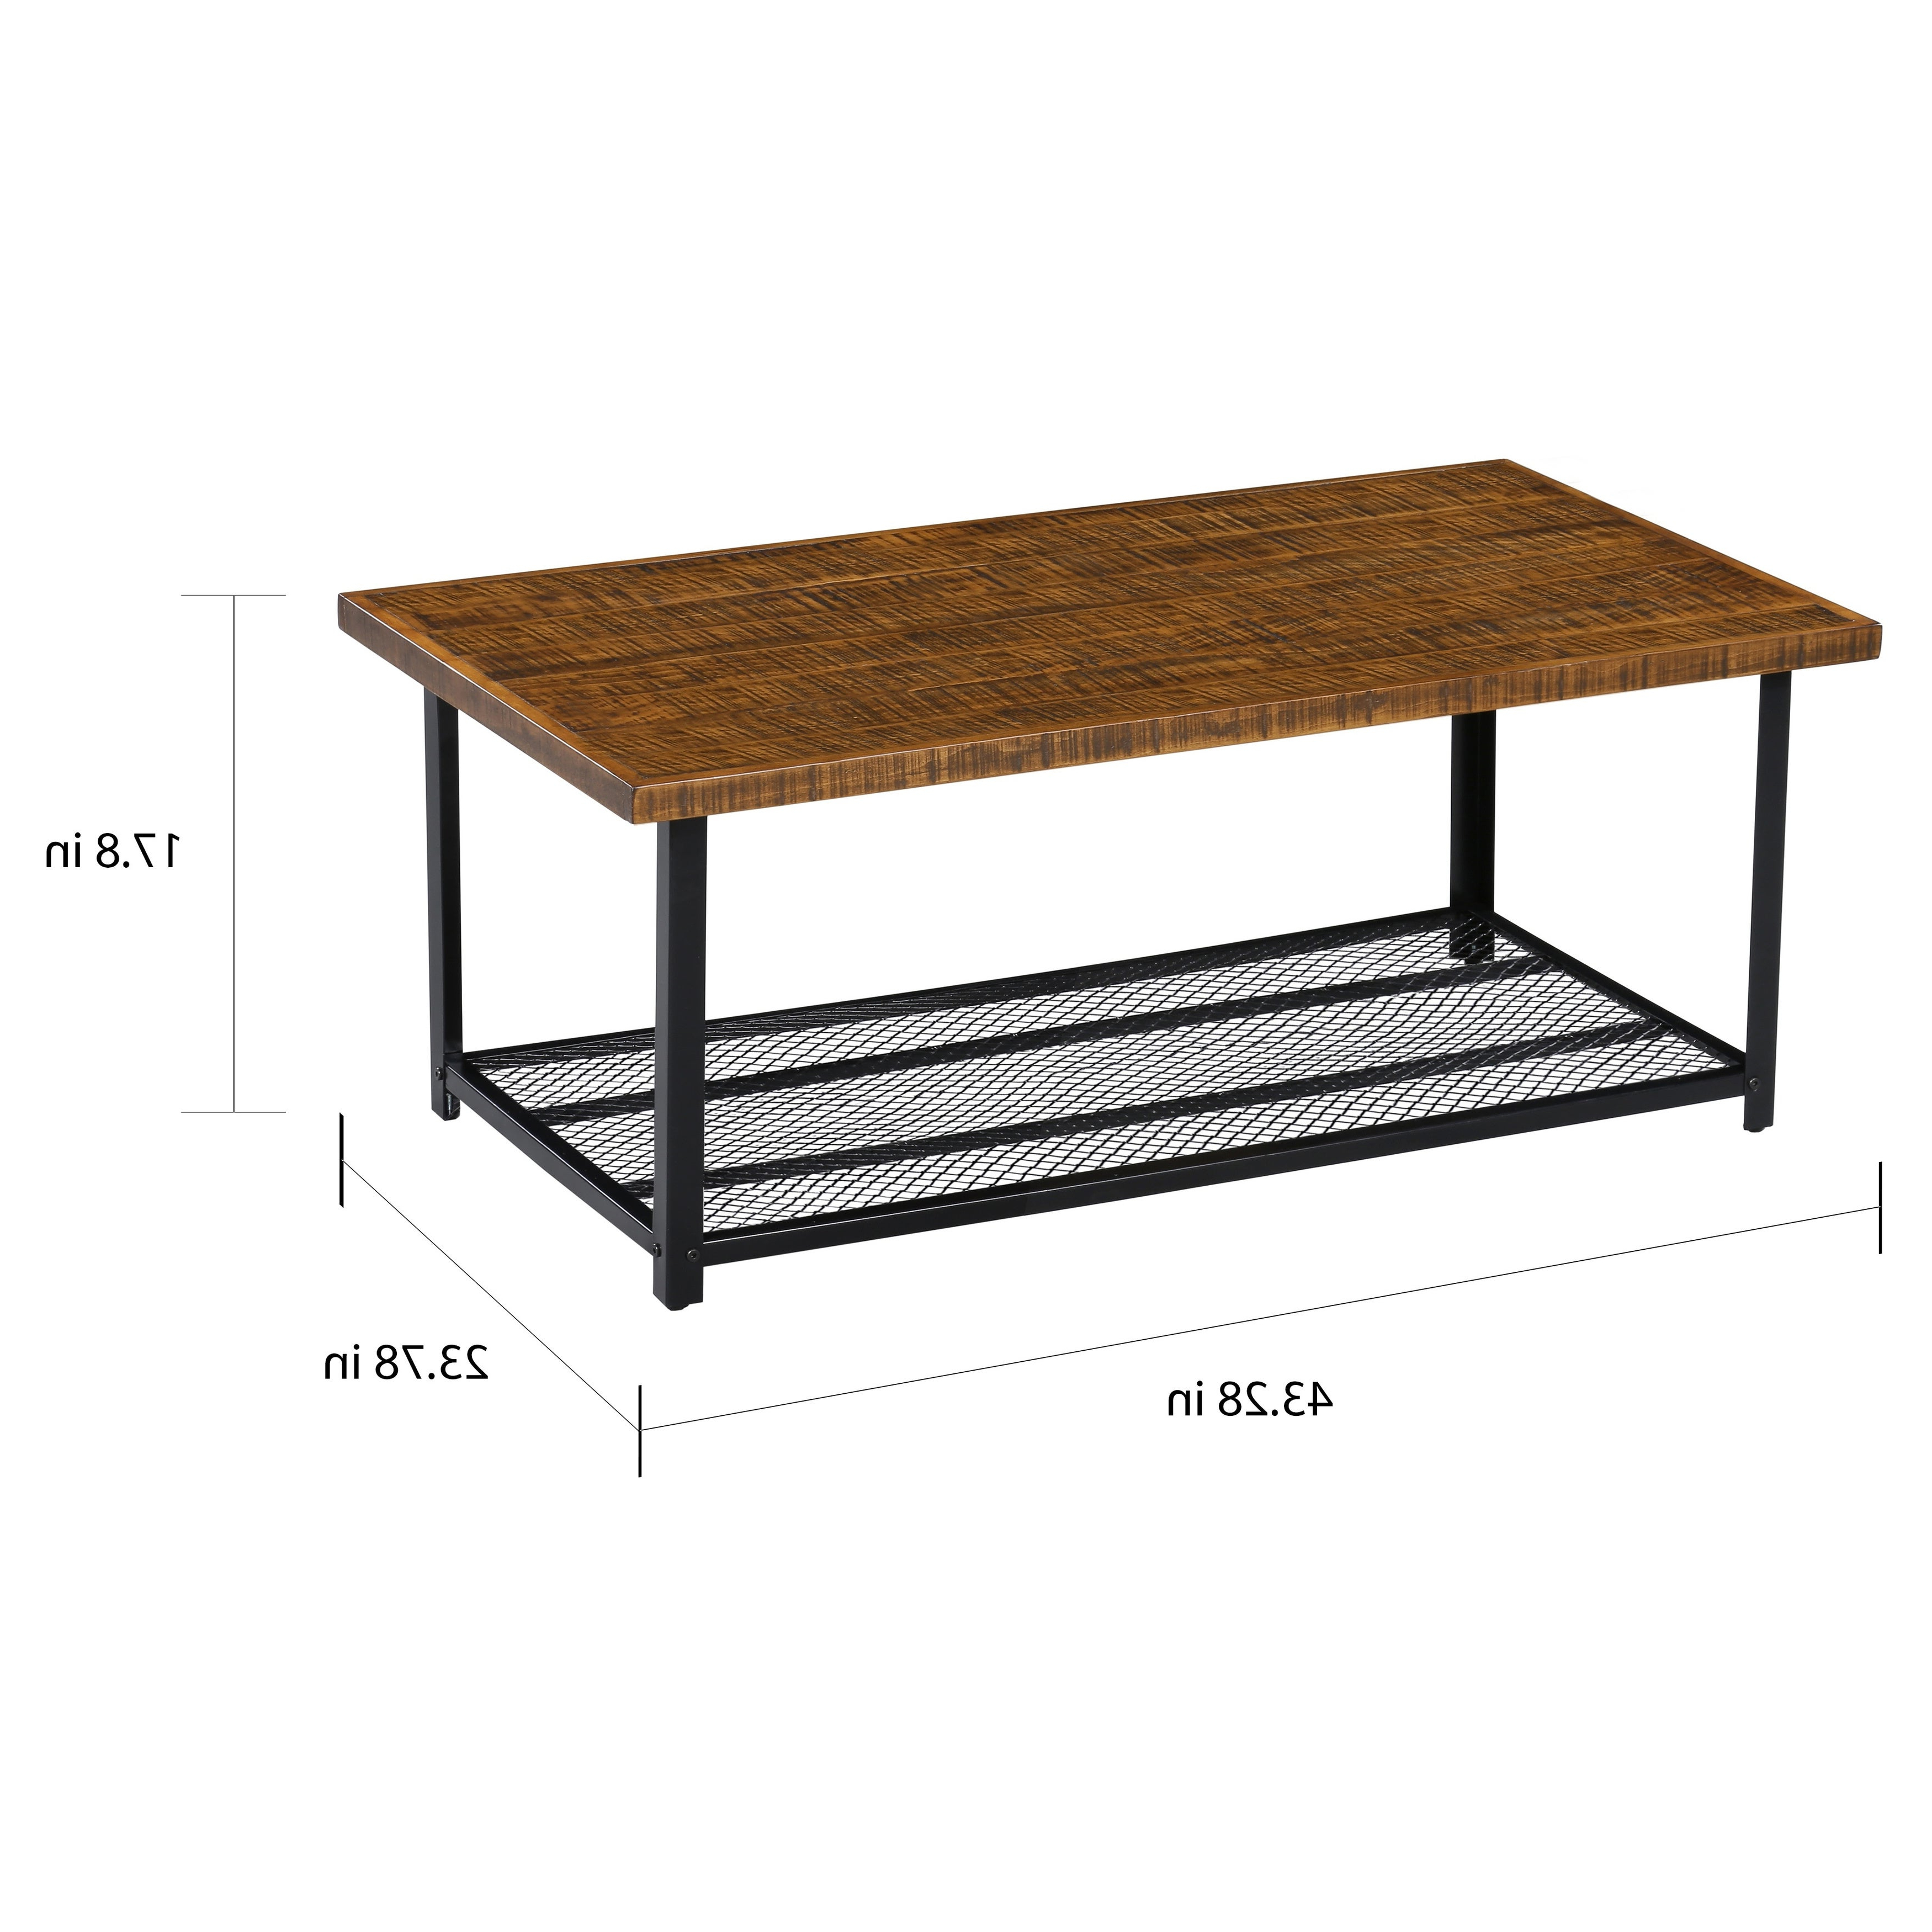 Carbon Loft Enjolras Wood/ Steel Coffee Table With Storage Shelf Pertaining To Fashionable Carbon Loft Enjolras Wood Steel Coffee Tables (View 8 of 20)